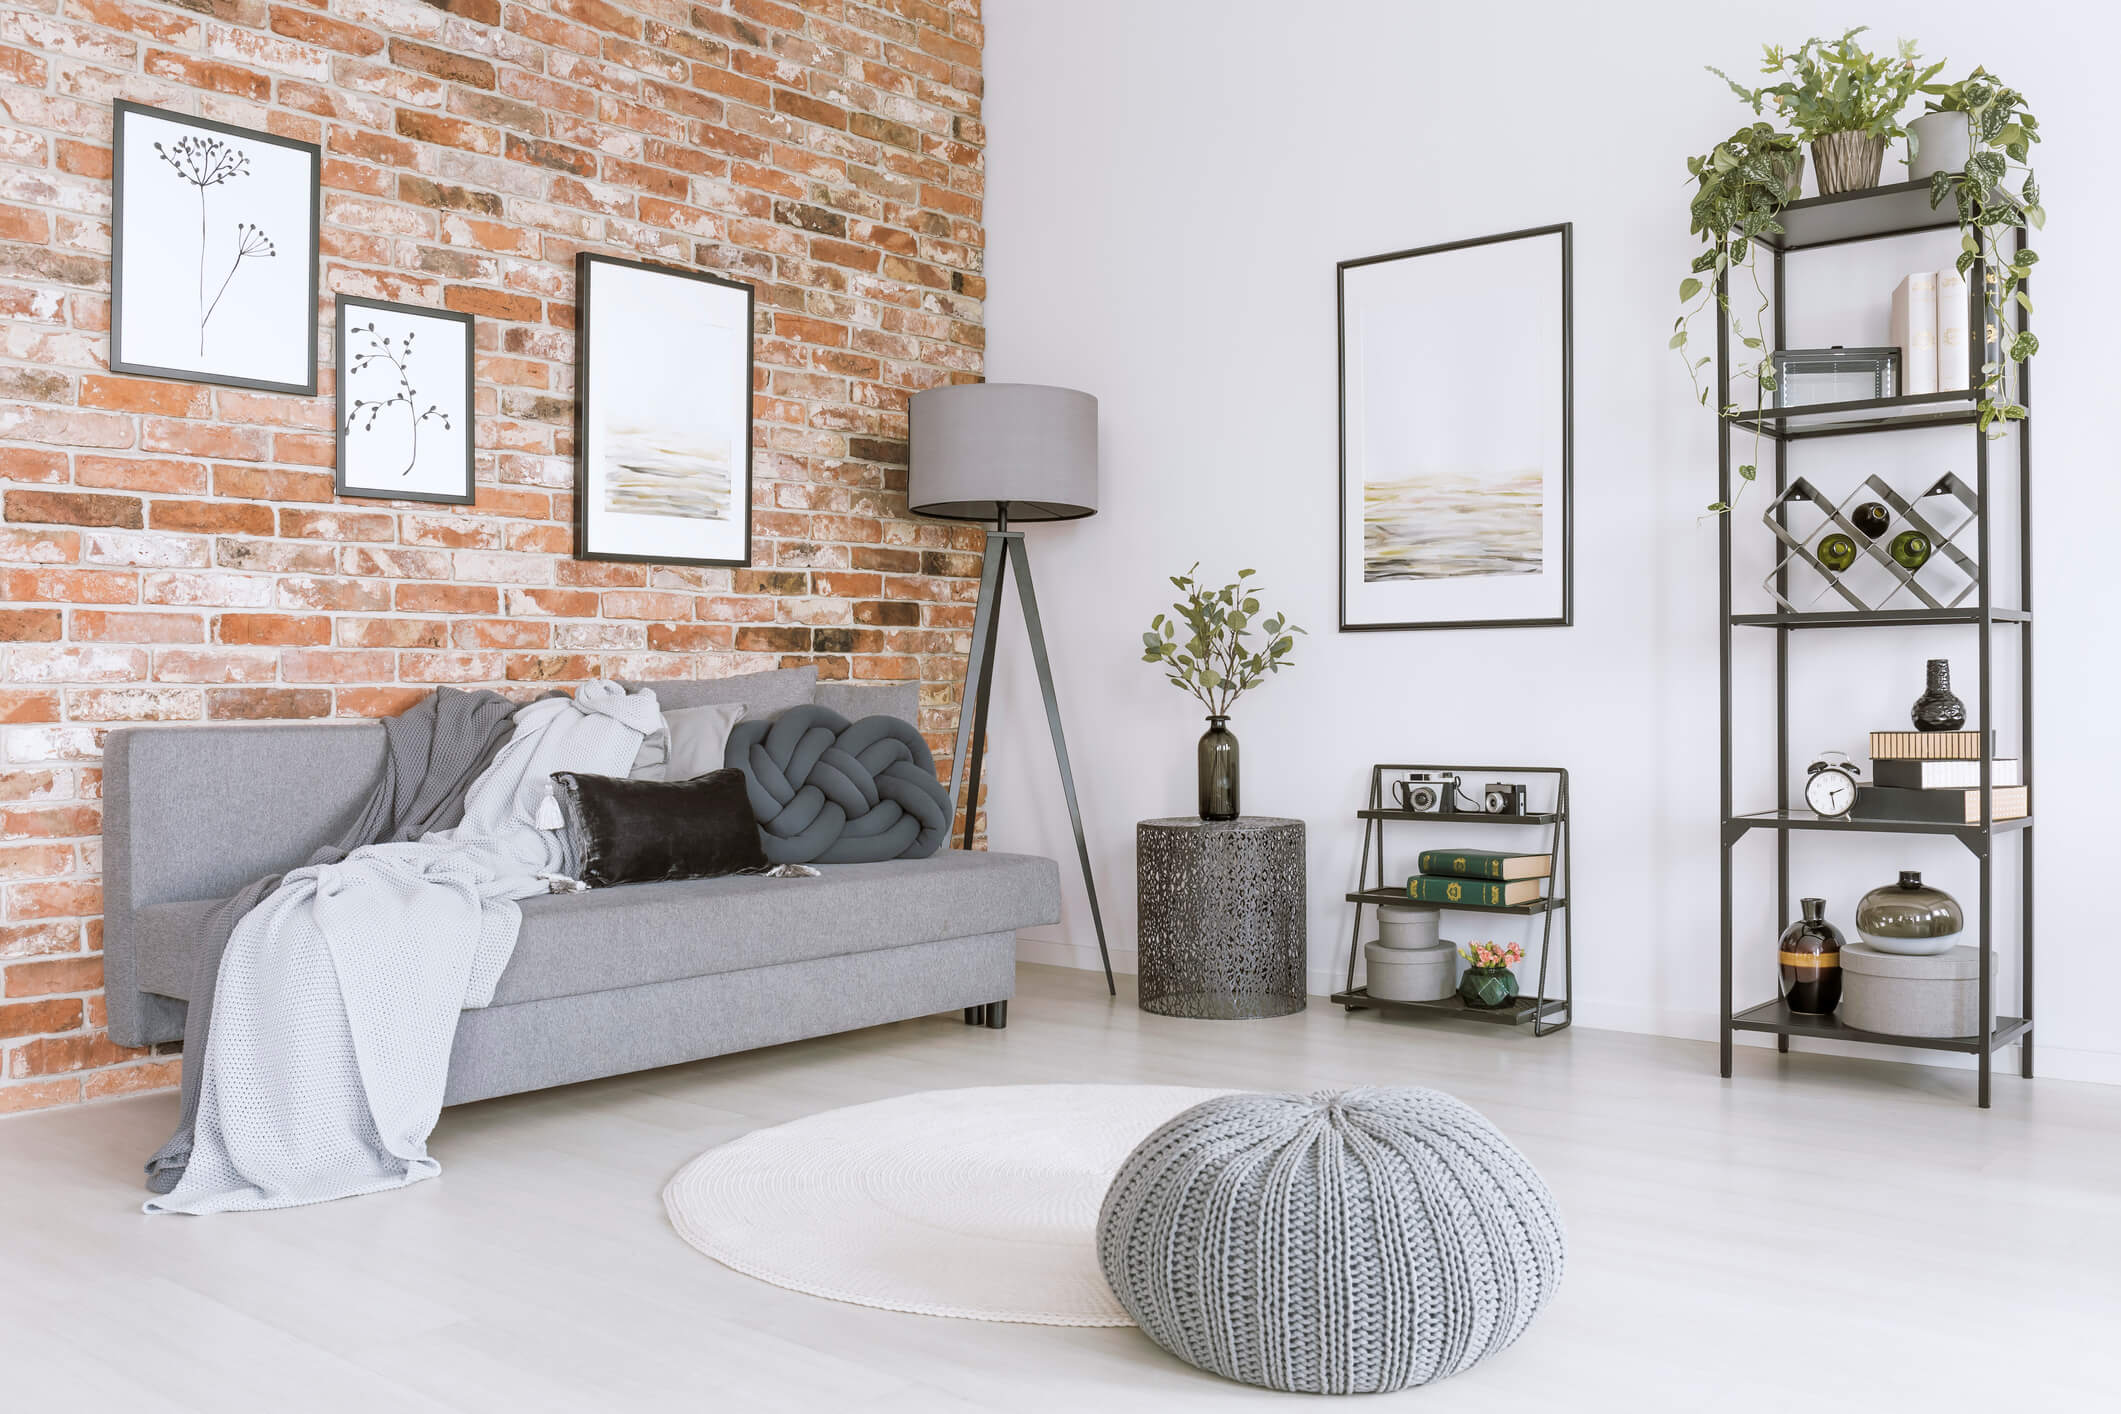 Stylish living room with a gray couch against a brick wall